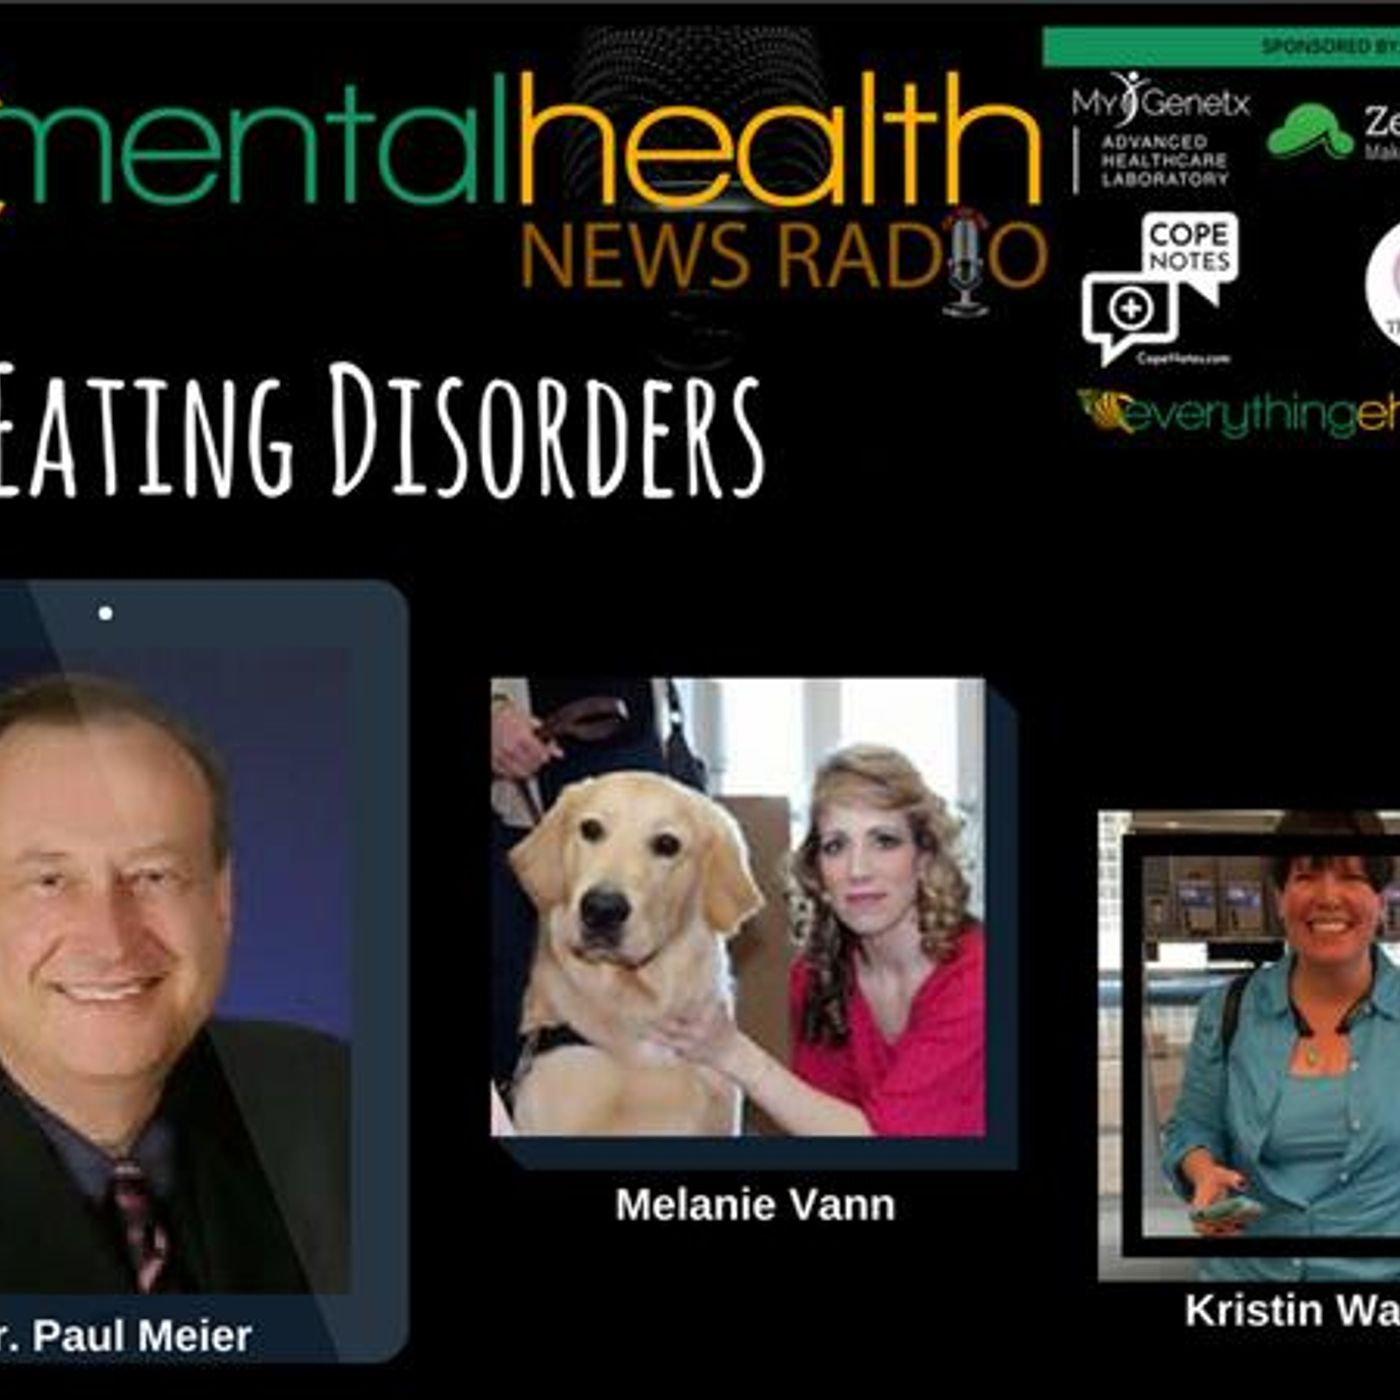 Mental Health News Radio - Round Table Discussions with Dr. Paul Meier: Eating Disorders